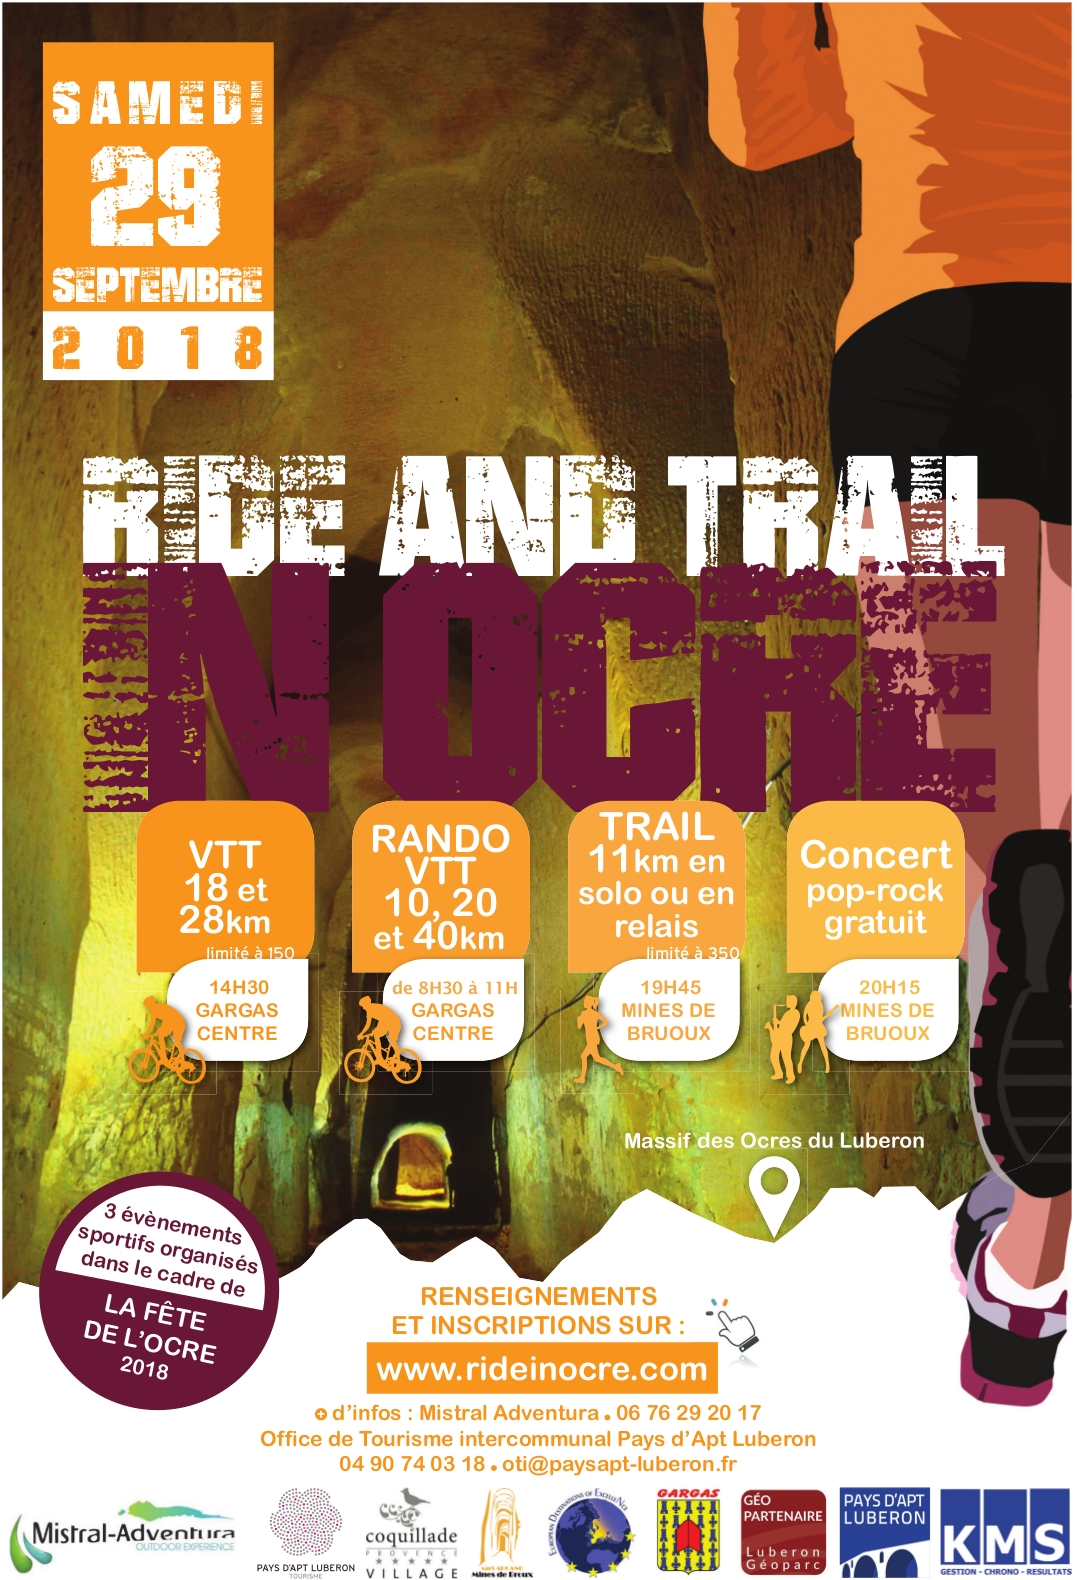 Ride & Trail In Ocre : Vtt 18Km & 28Km